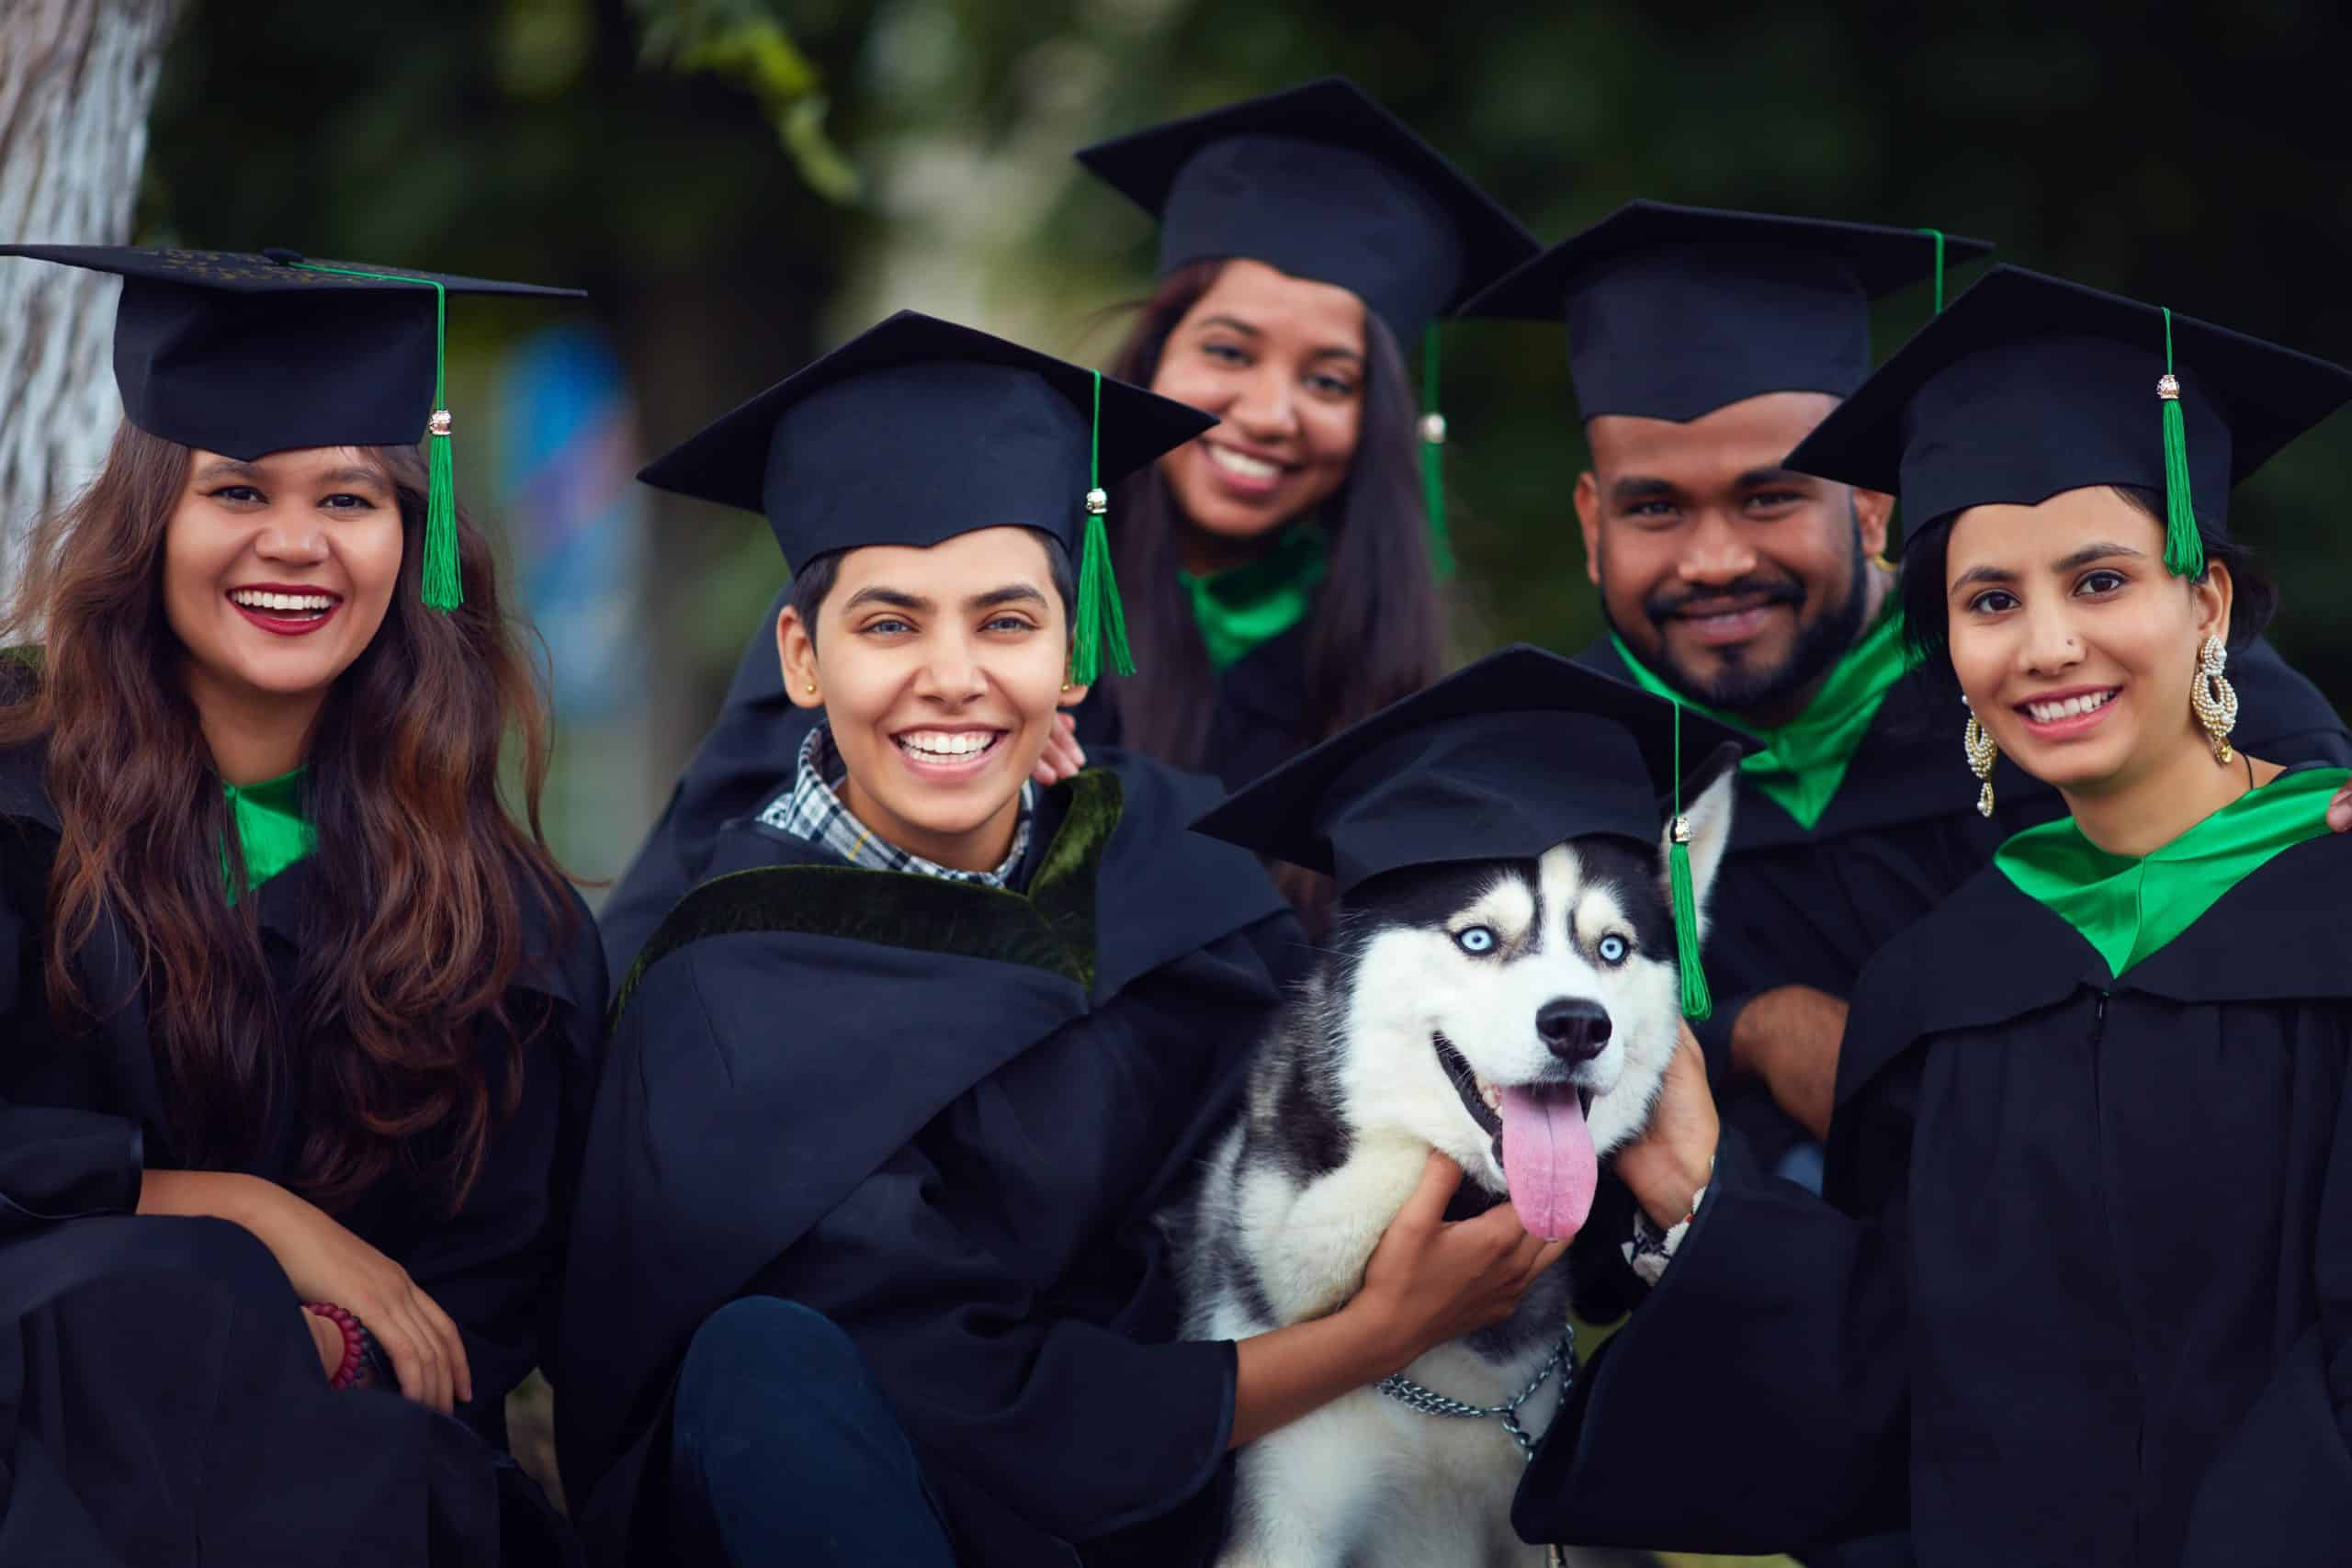 Graduates celebrate with Husky dog wearing a graduation cap. When you train your pet for college, scope out your living situation to make sure it's suitable for the animal's size and nature.